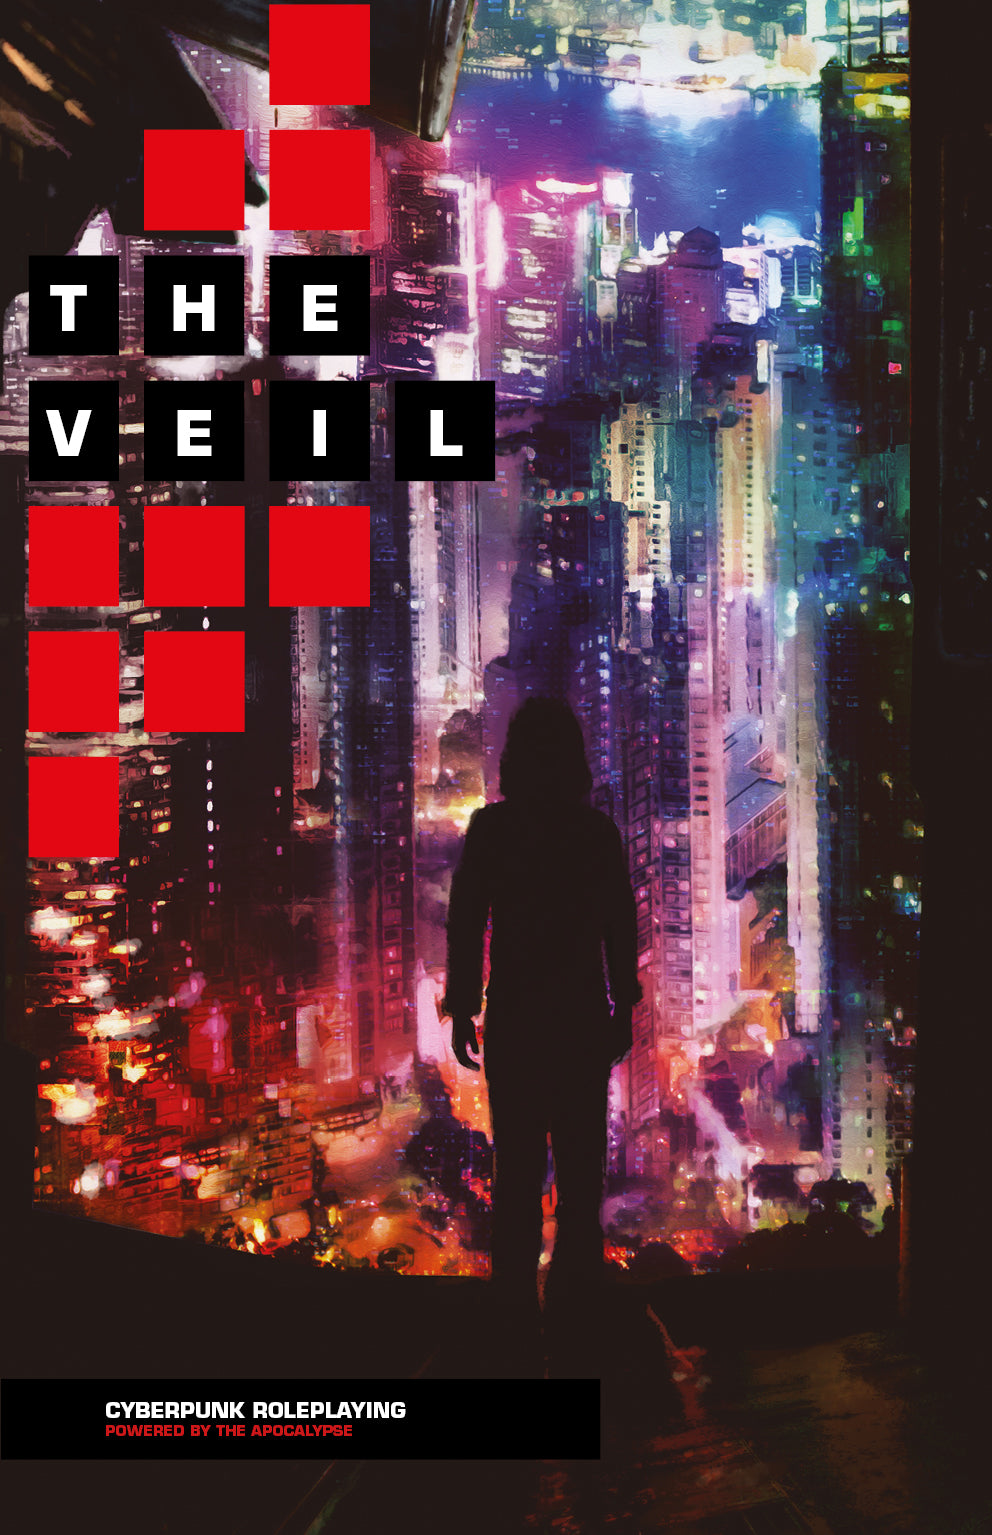 the veil cyberpunk rpg cover